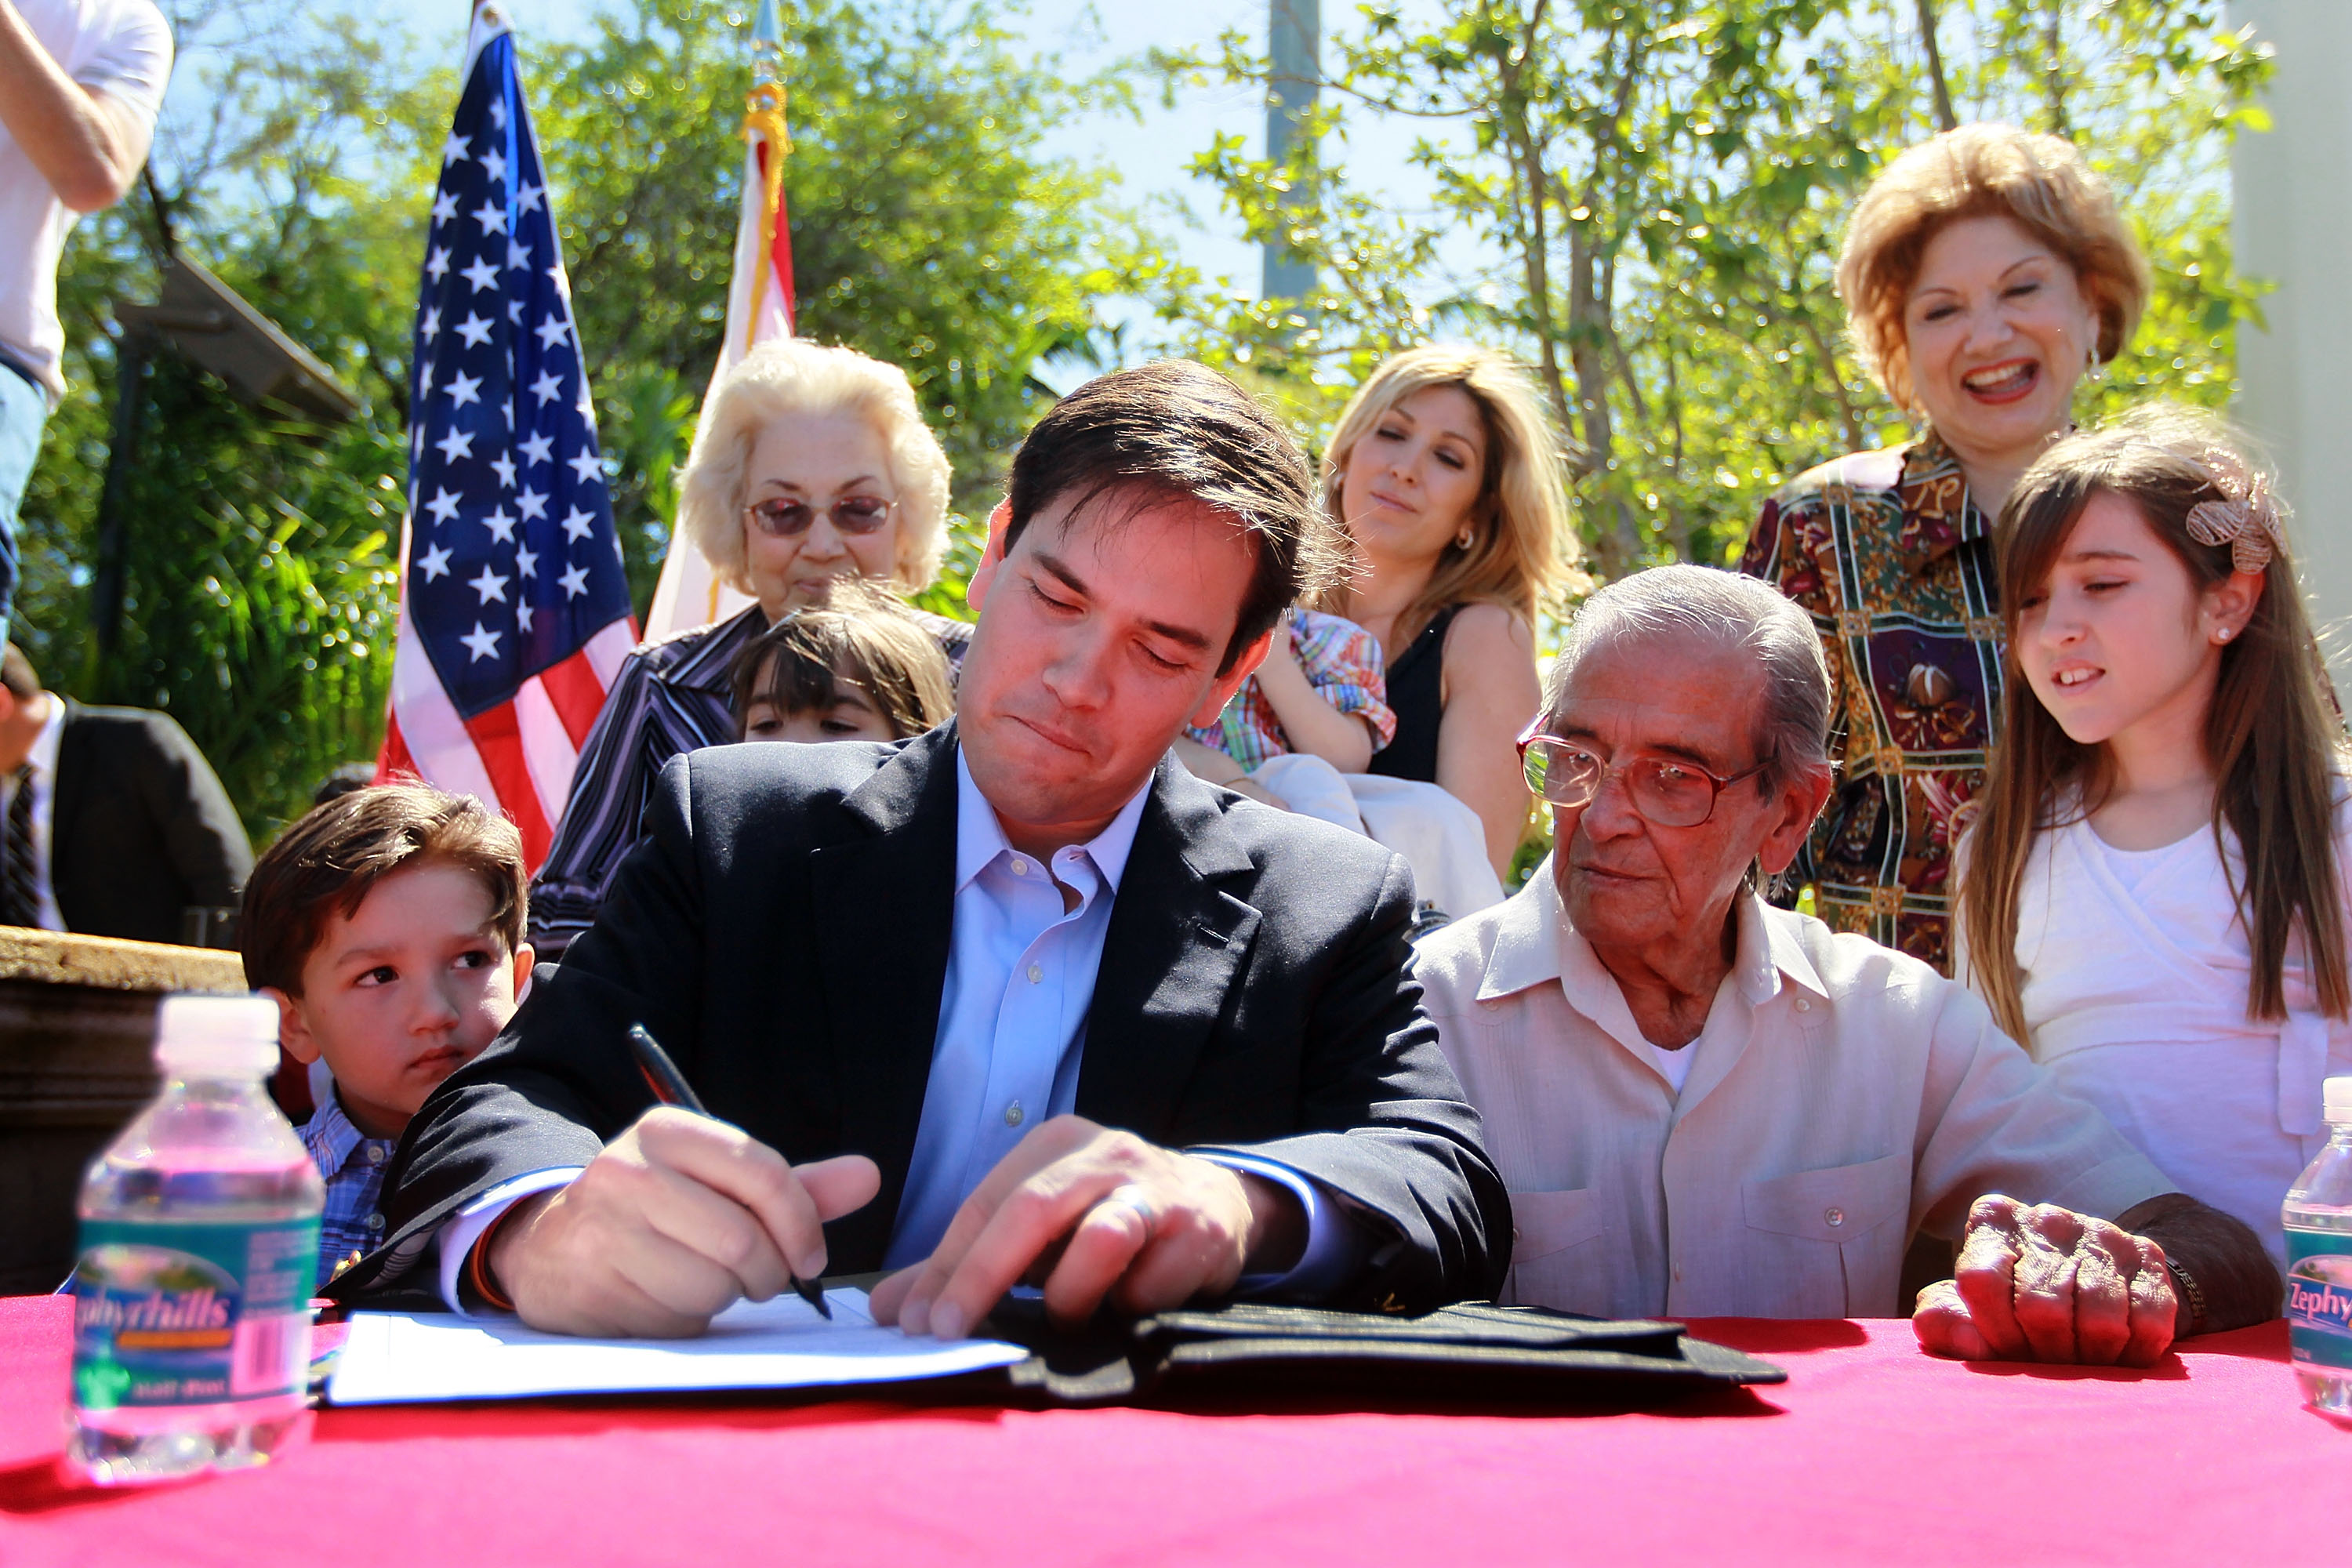 Marco Rubio (3rd L) puts pen to paper as he sits with his son, Anthony Rubio (L), father Mario Rubio (3rd R) and daughter Amanda Rubio (R) as he signs election documents officially qualifying him as a Republican candidate for the U.S. Senate on April 27, 2010 . (Getty)